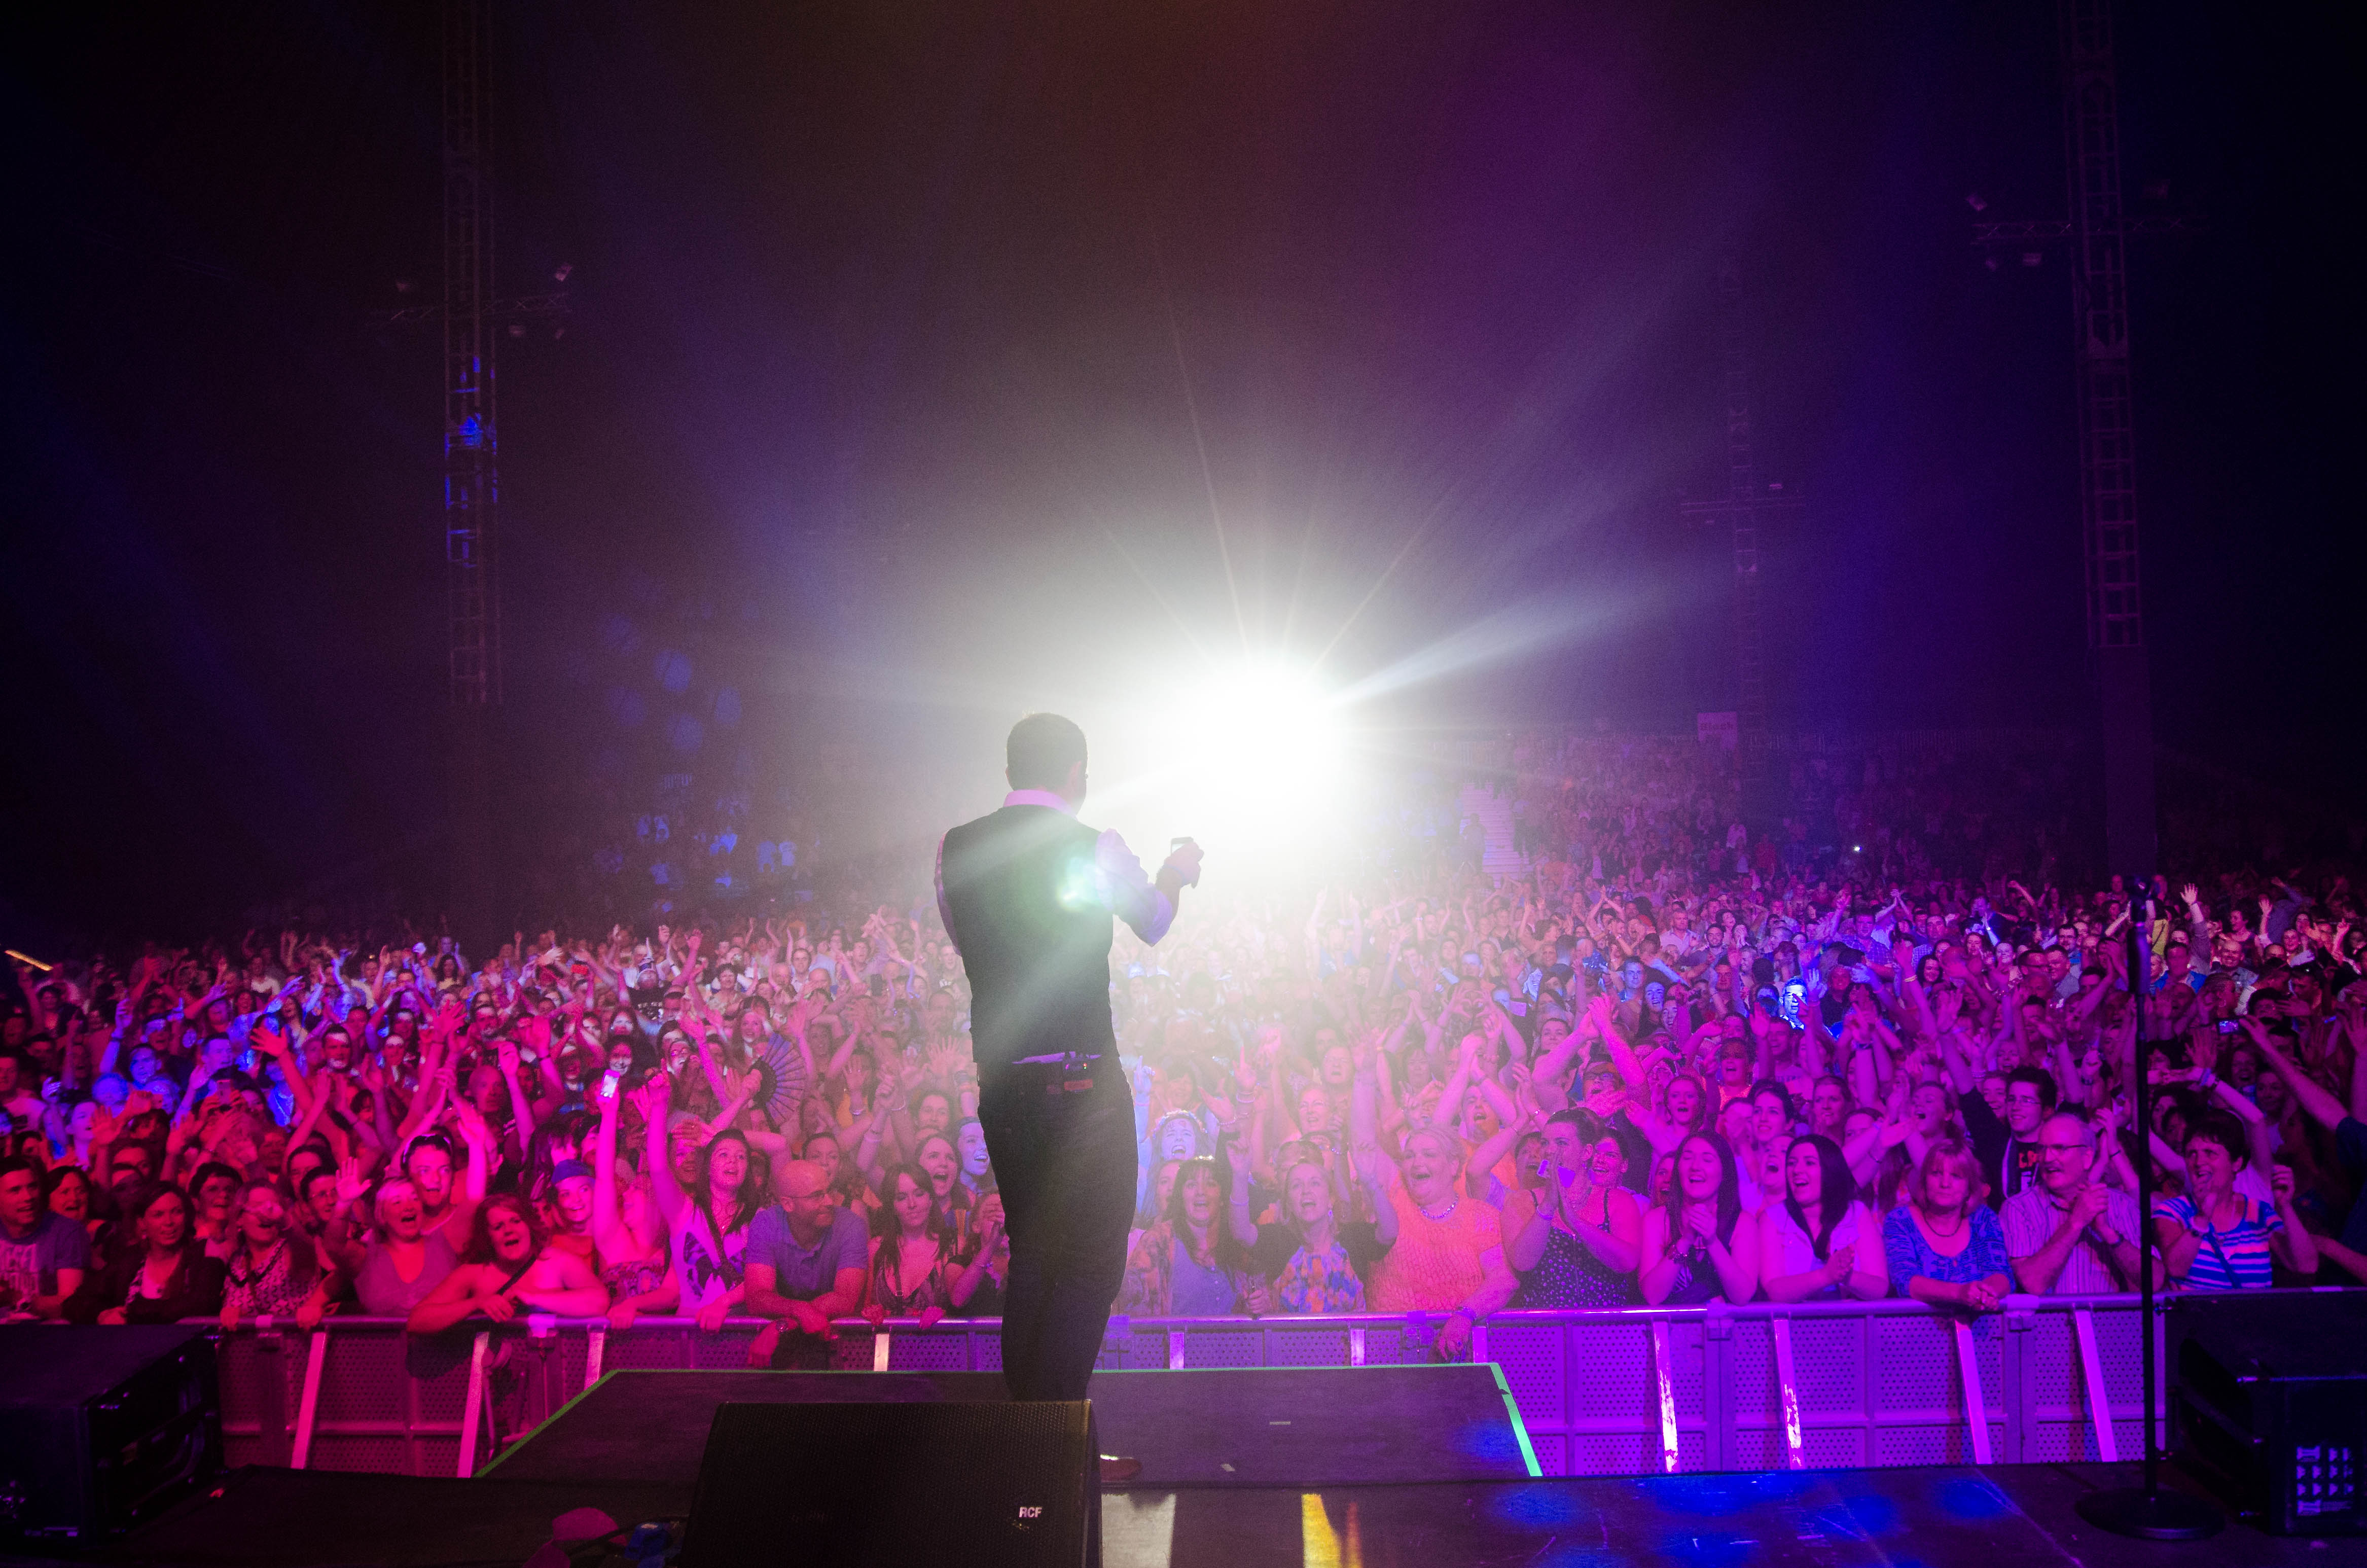 nathan-carter-at-the-marquee-cork-by-sean-smyth-15-6-14-53-of-55